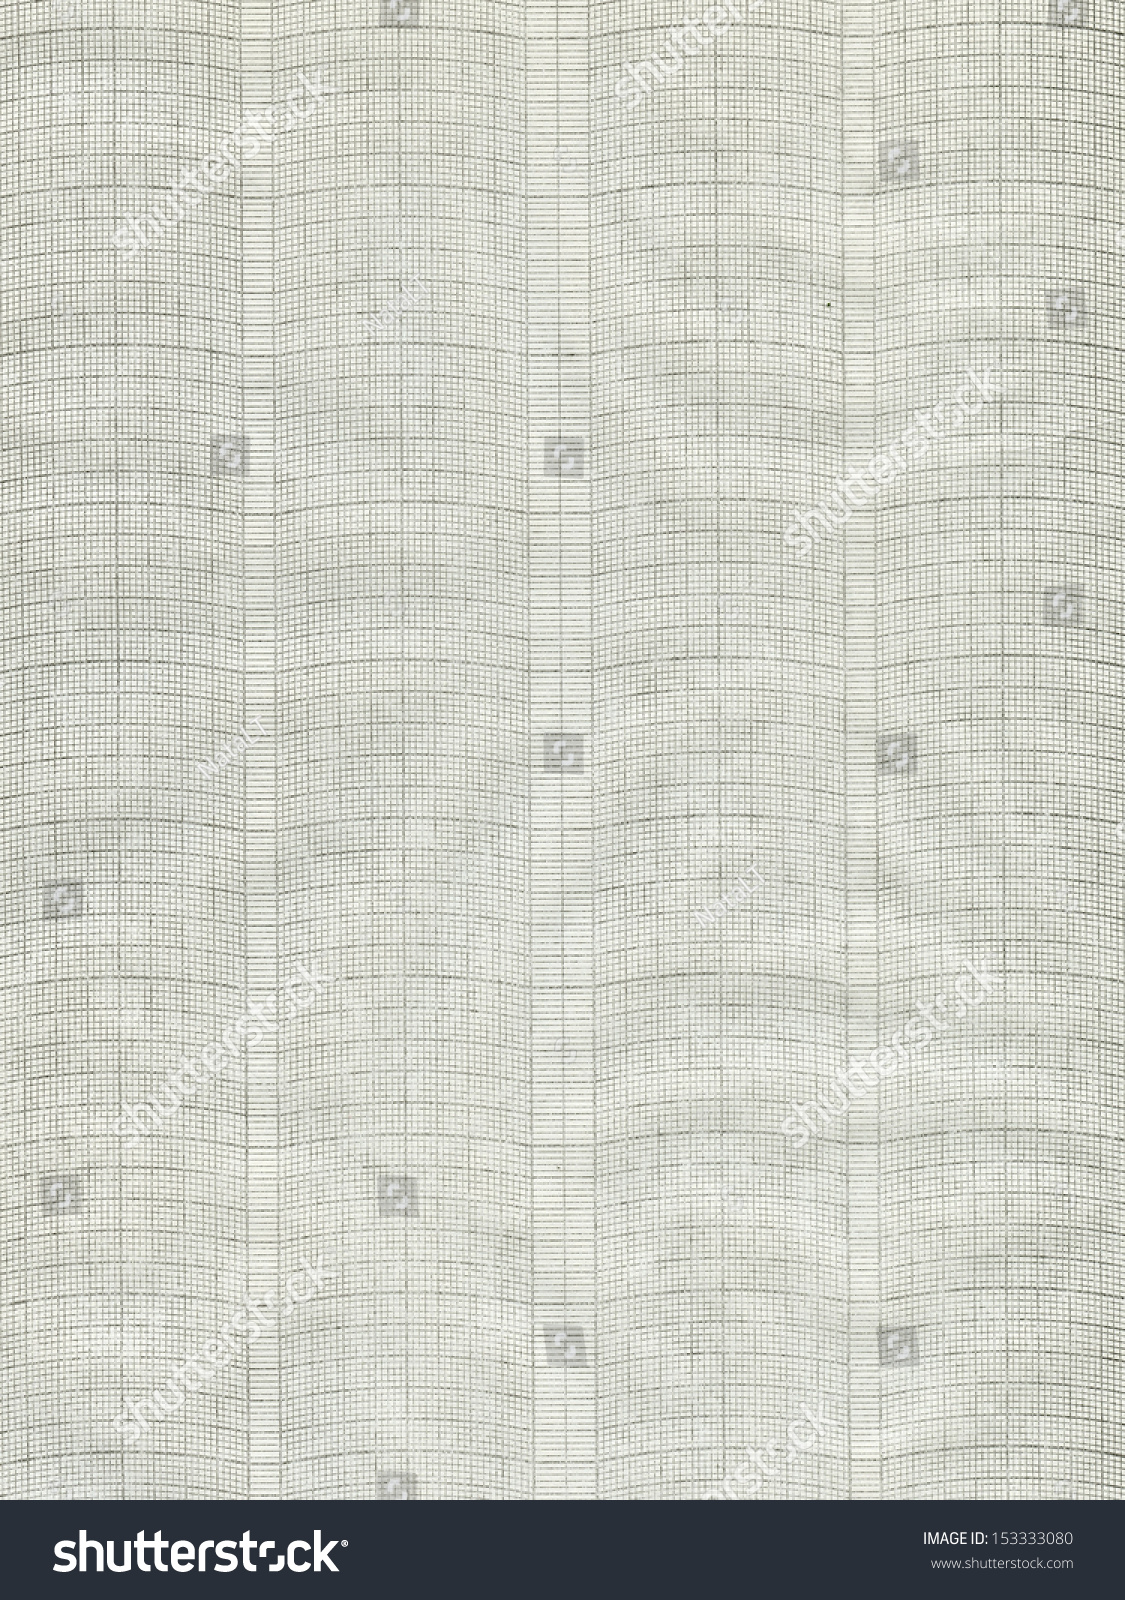 millimeter ruled graph paper